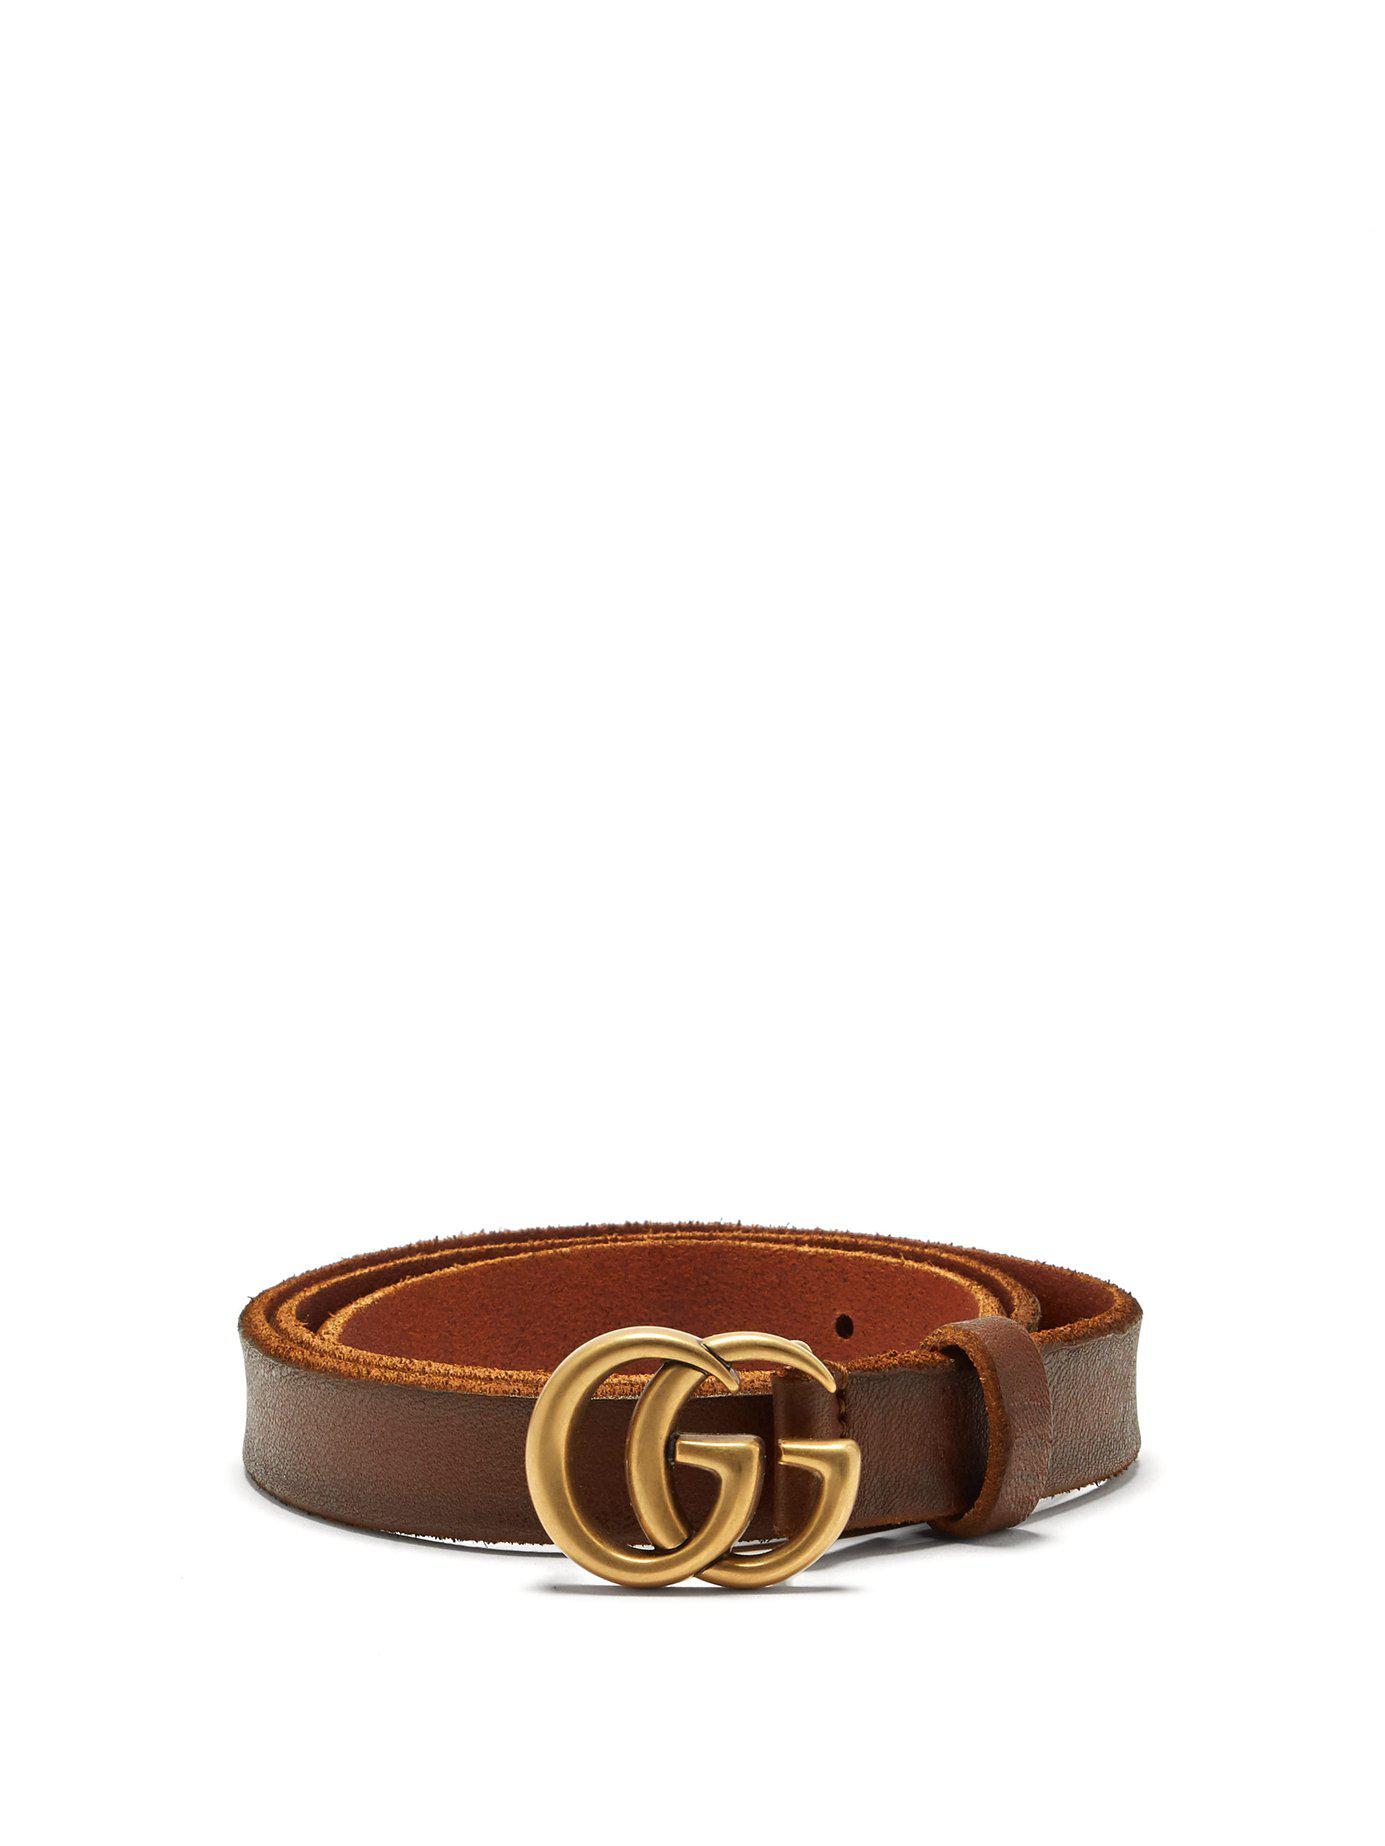 038232e13d5 Lyst - Gucci Gg Logo 2cm Leather Belt in Brown